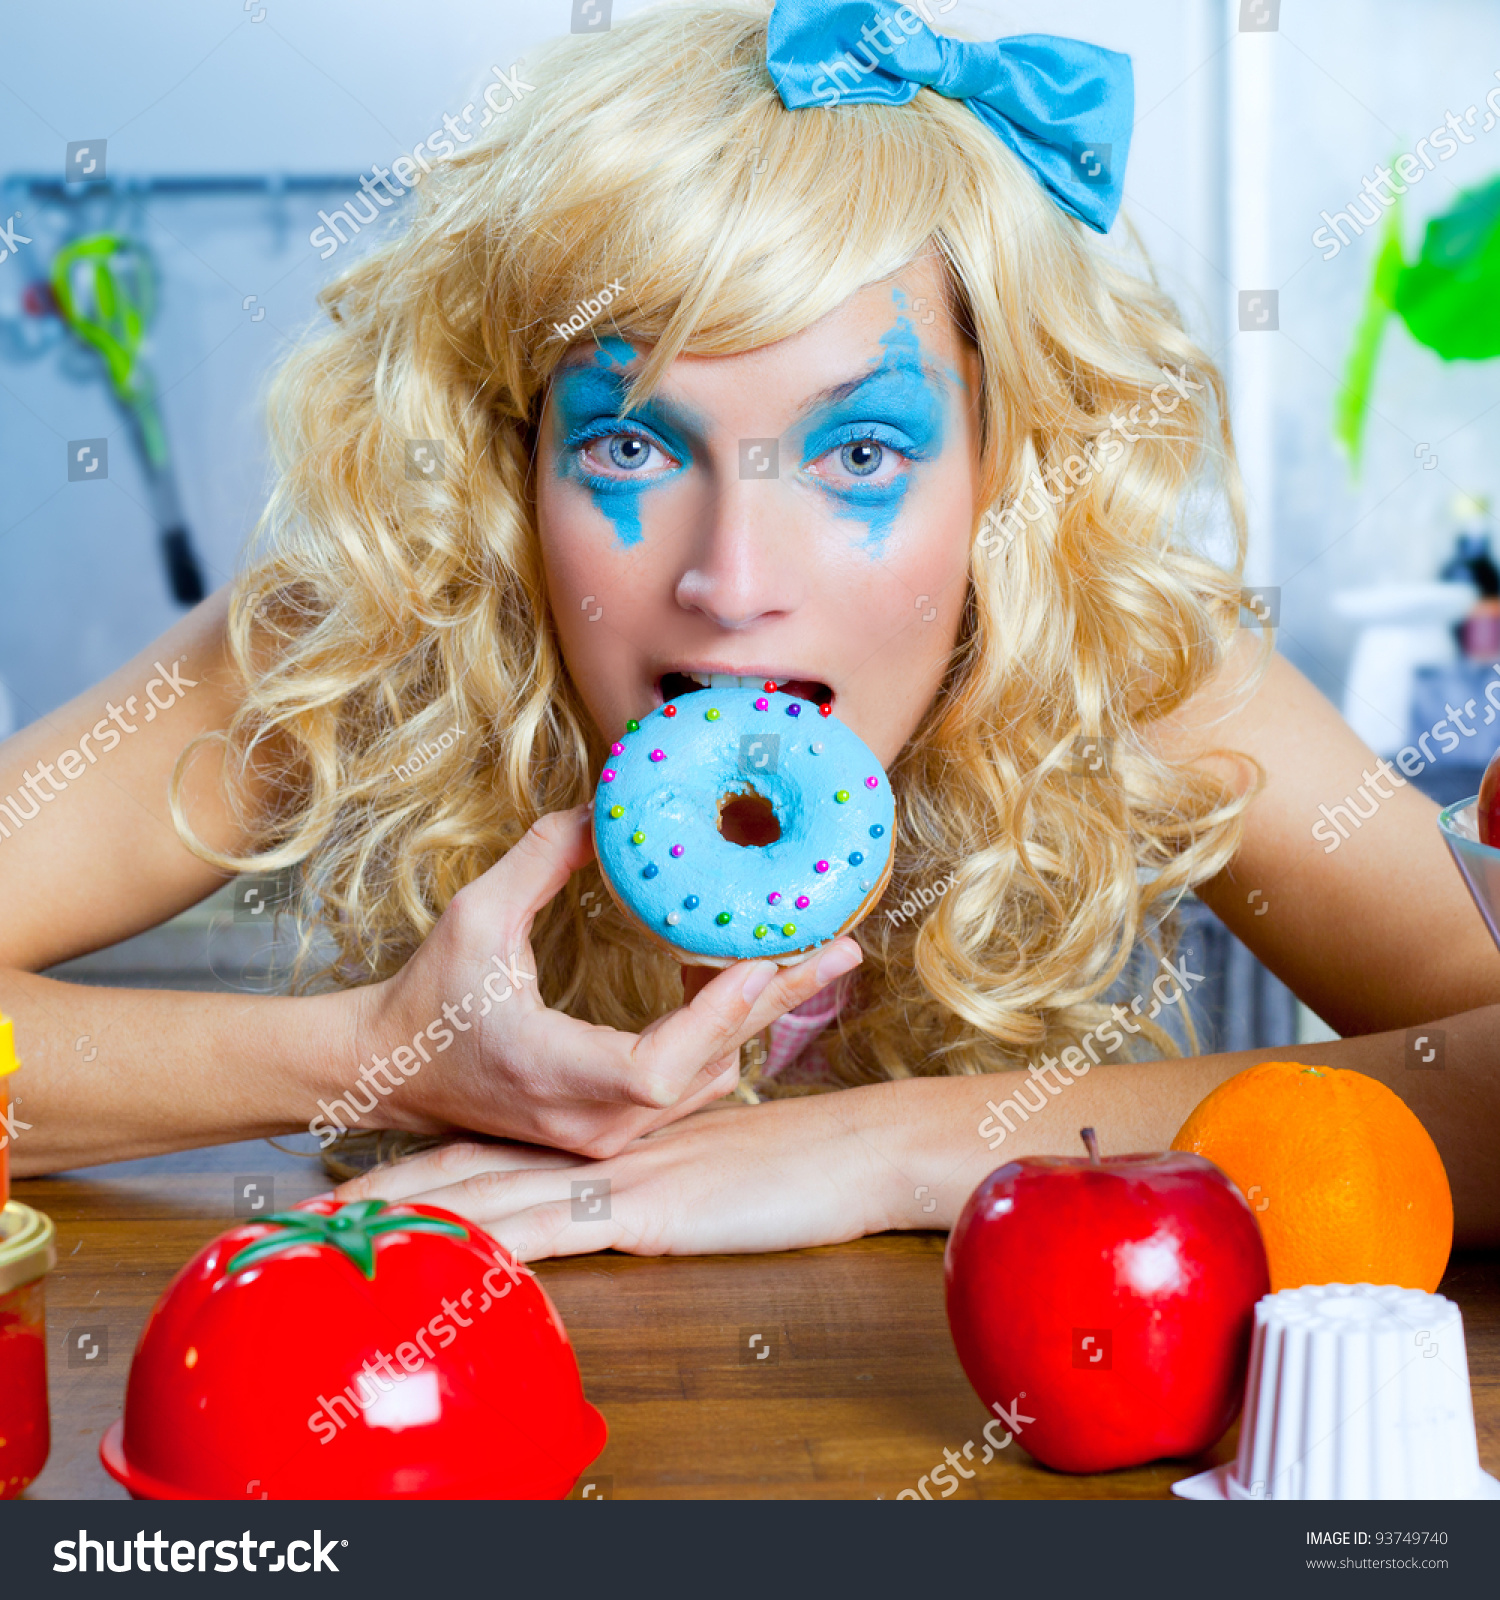 Something Blond Blue Kitchens: Blonde Funny Girl On Kitchen Eating Stock Photo 93749740